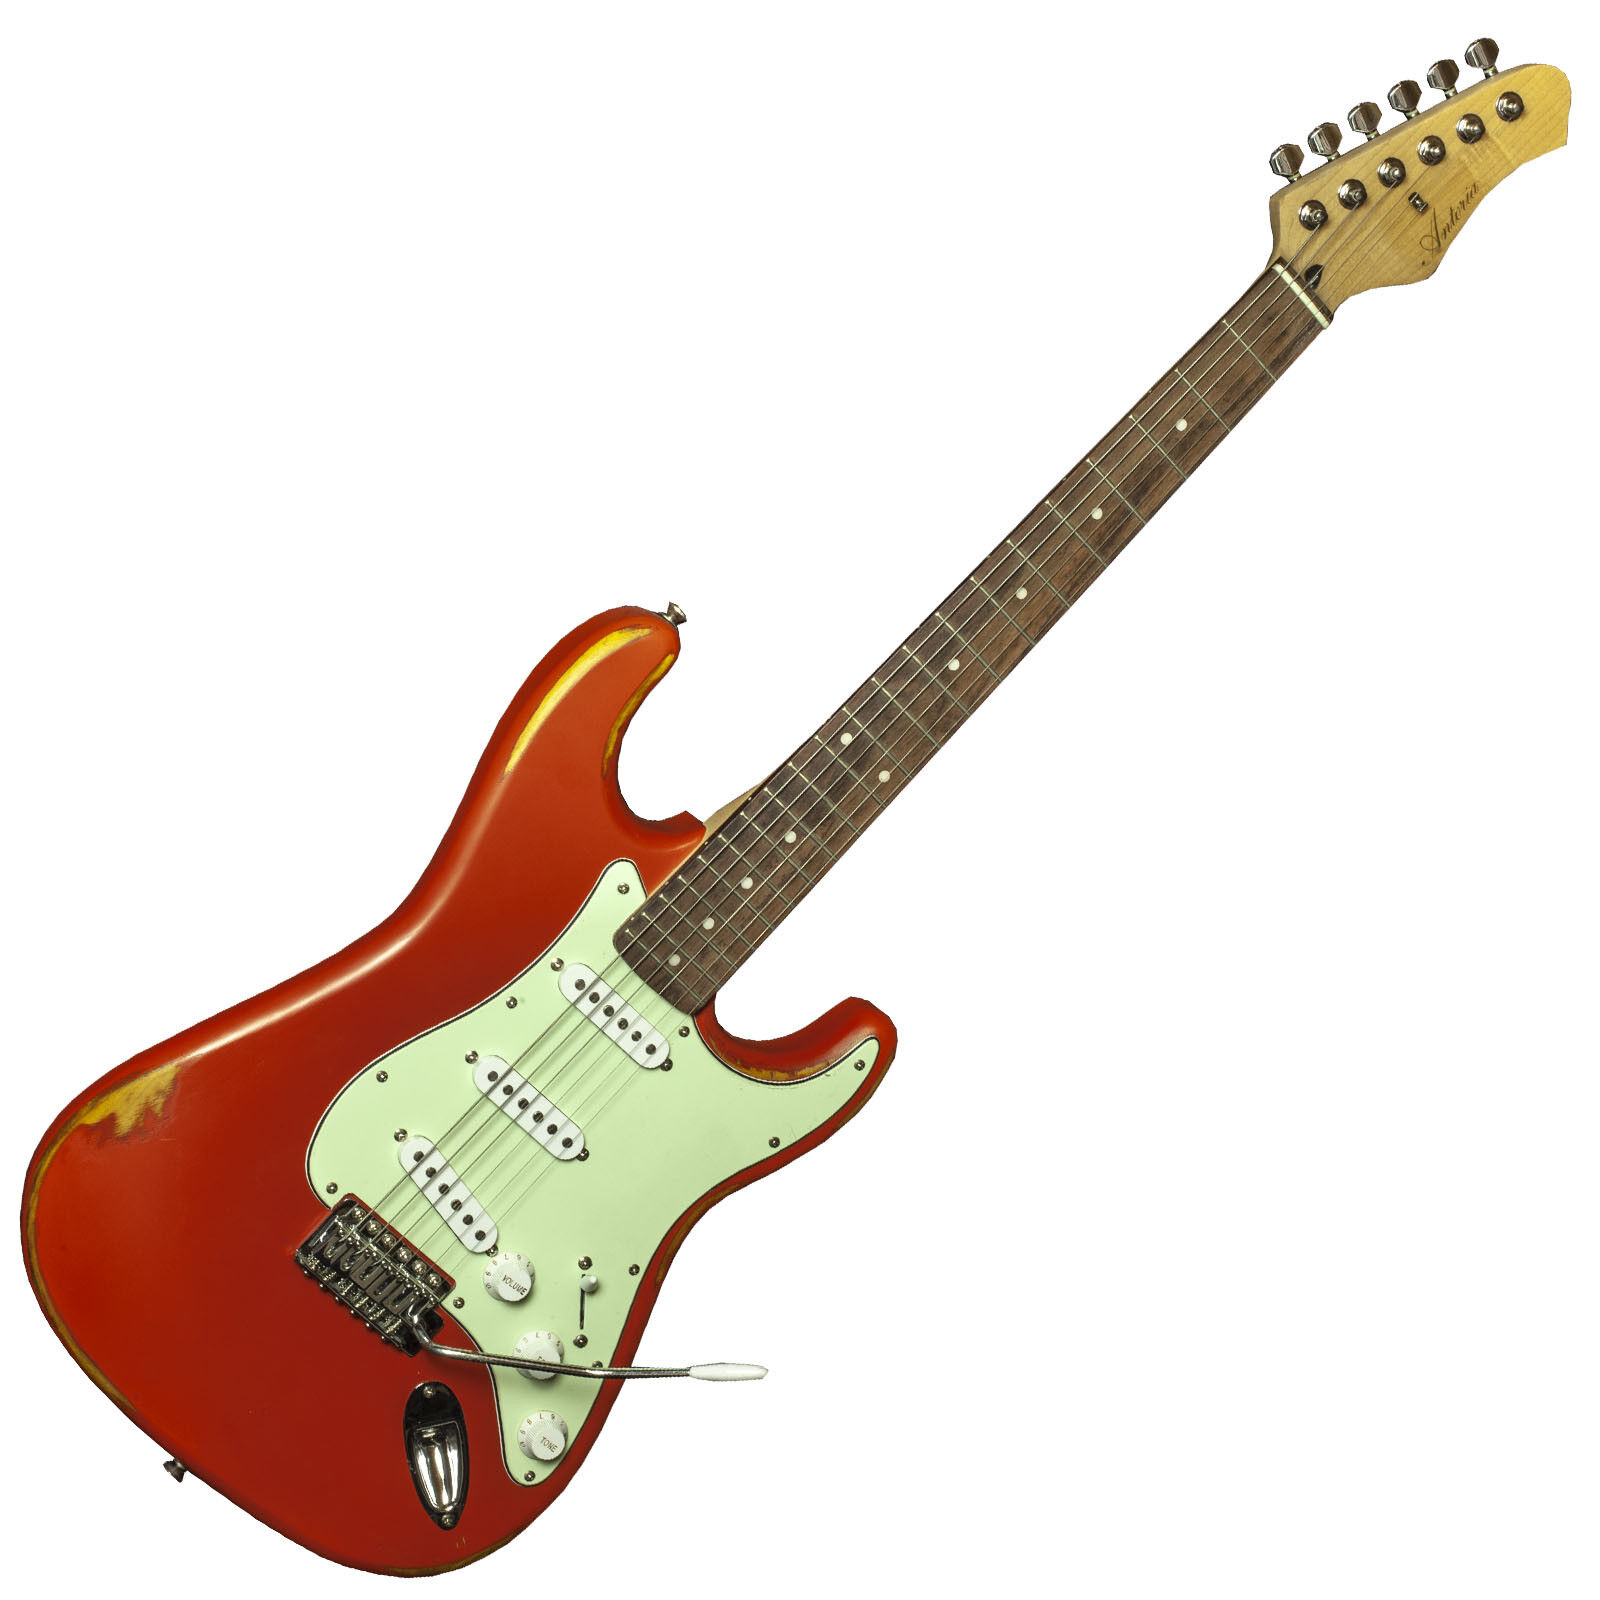 Antoria DSSROT Cosmos 1950 Strat Style Electric Guitar Distressed ROT Vintage s